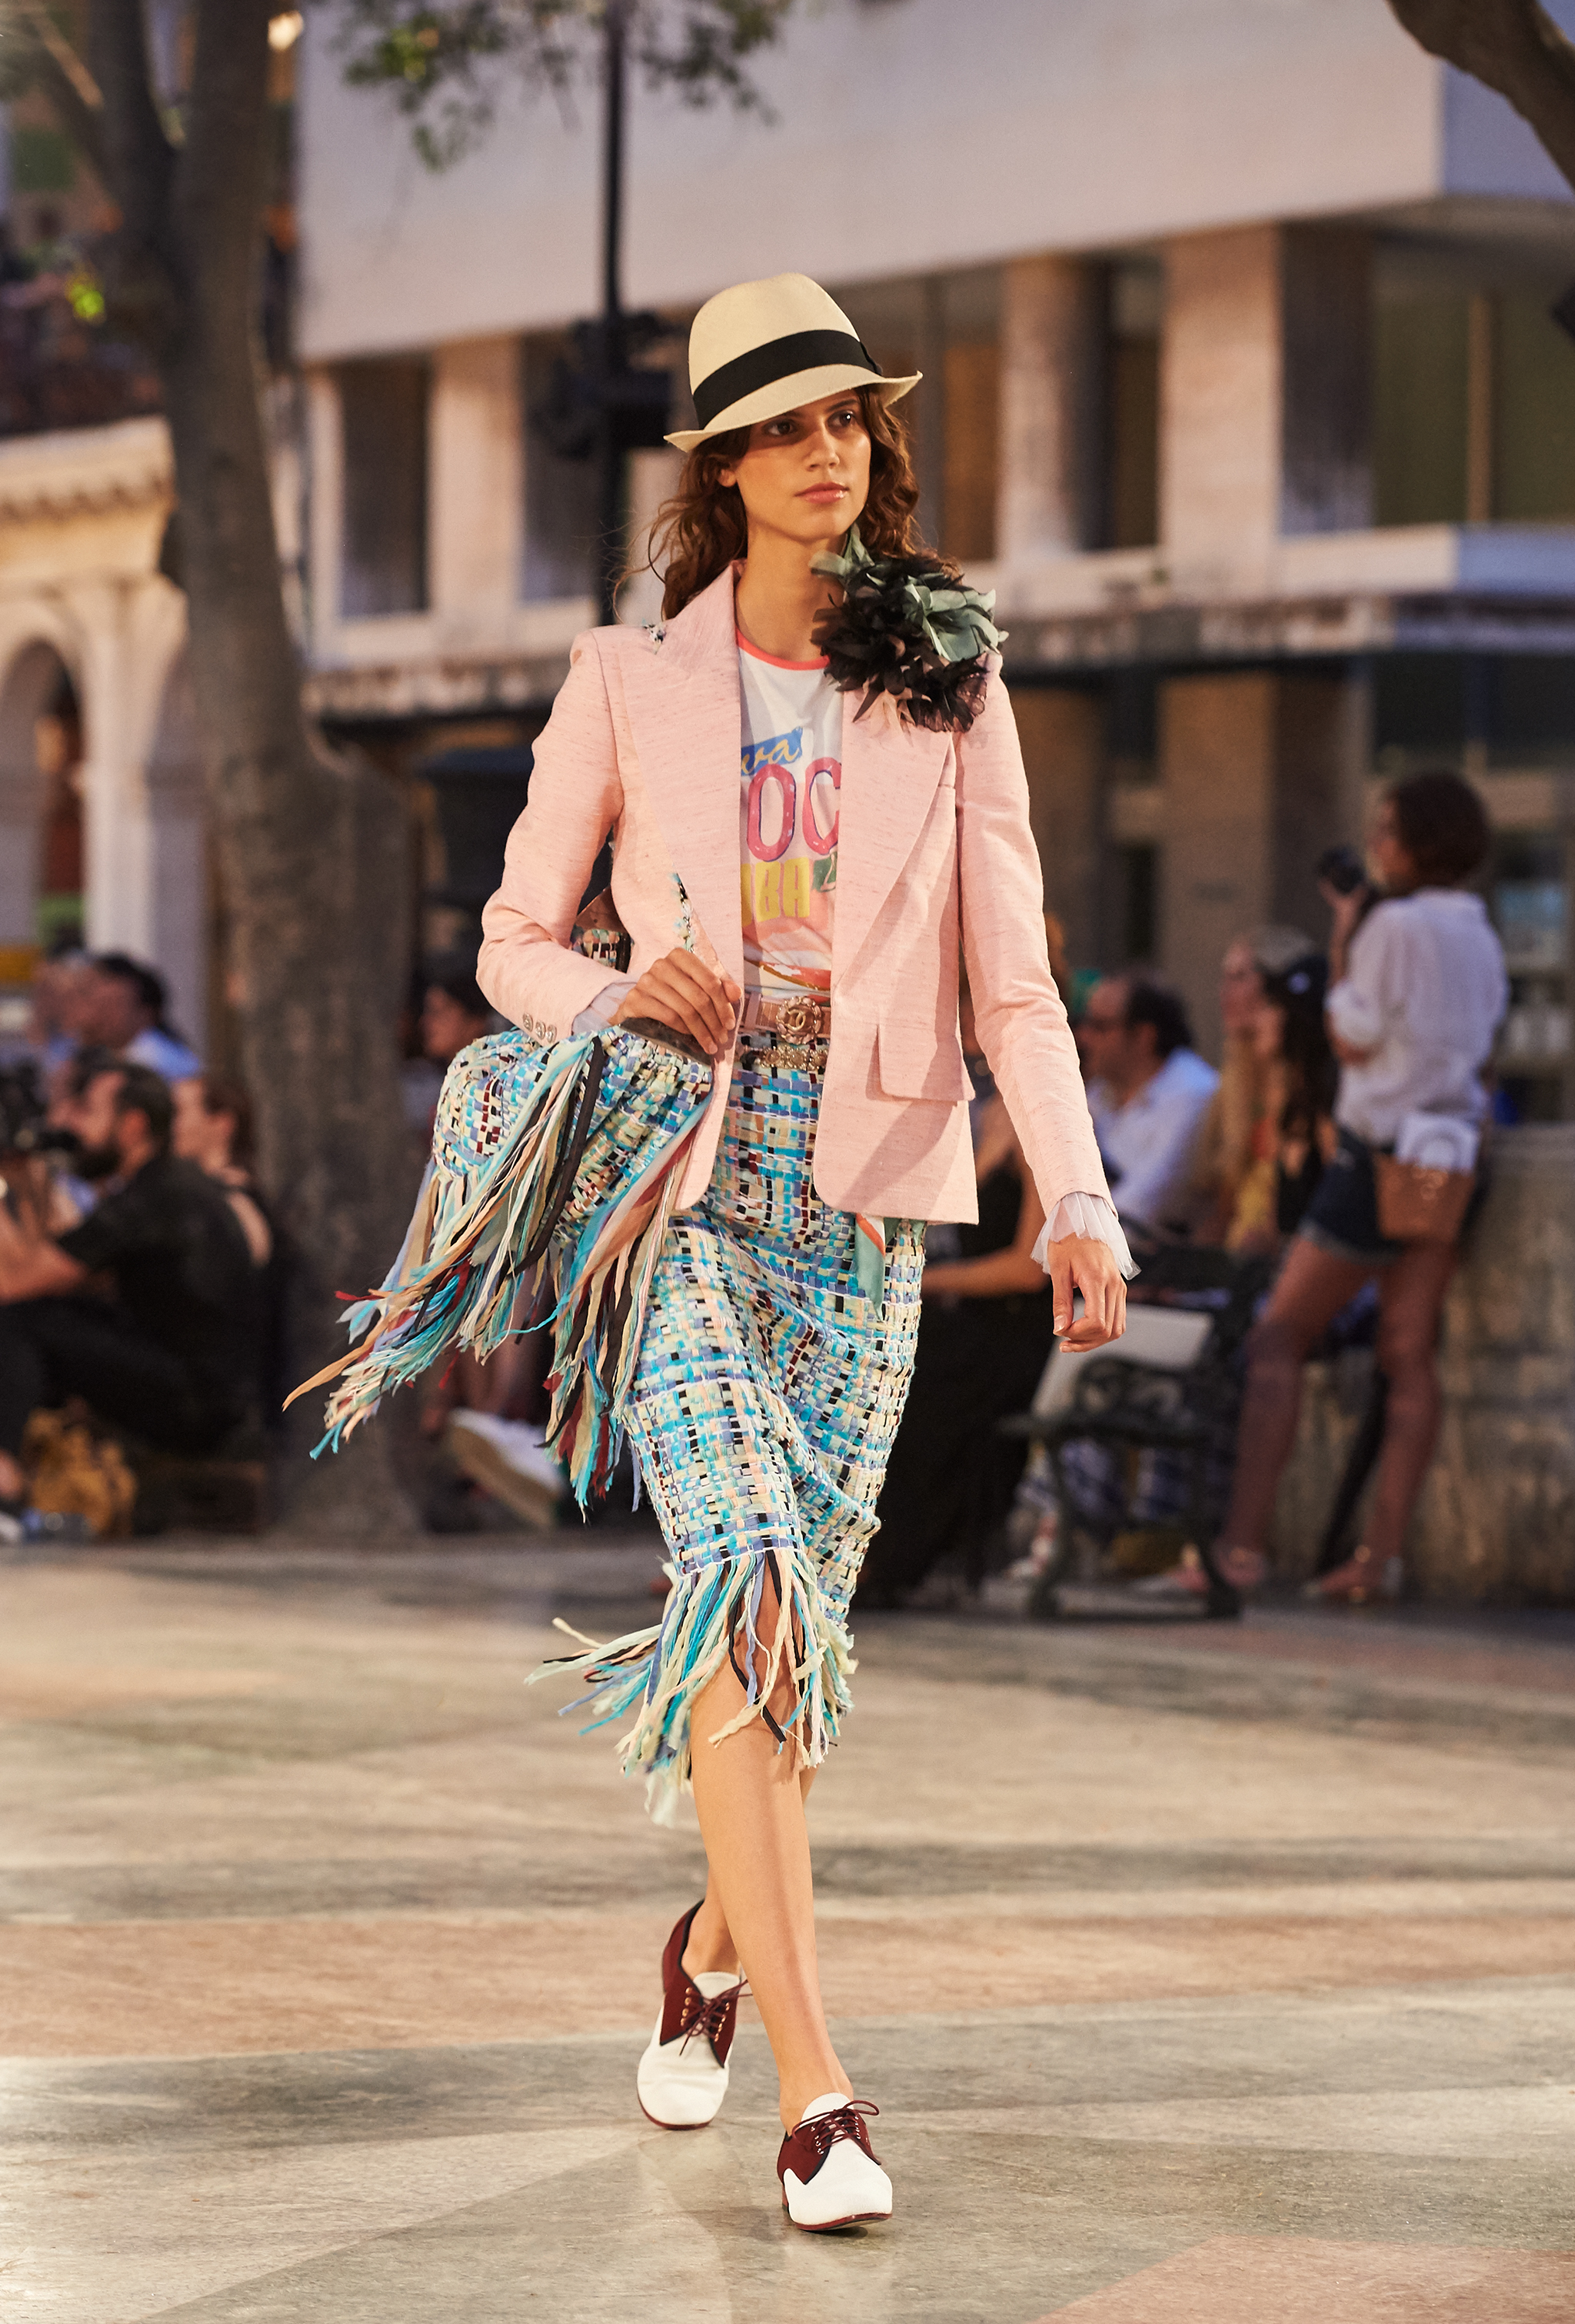 05_Cruise 2016-17 collection - Show pictures by Olivier Saillant - Look 43.jpg